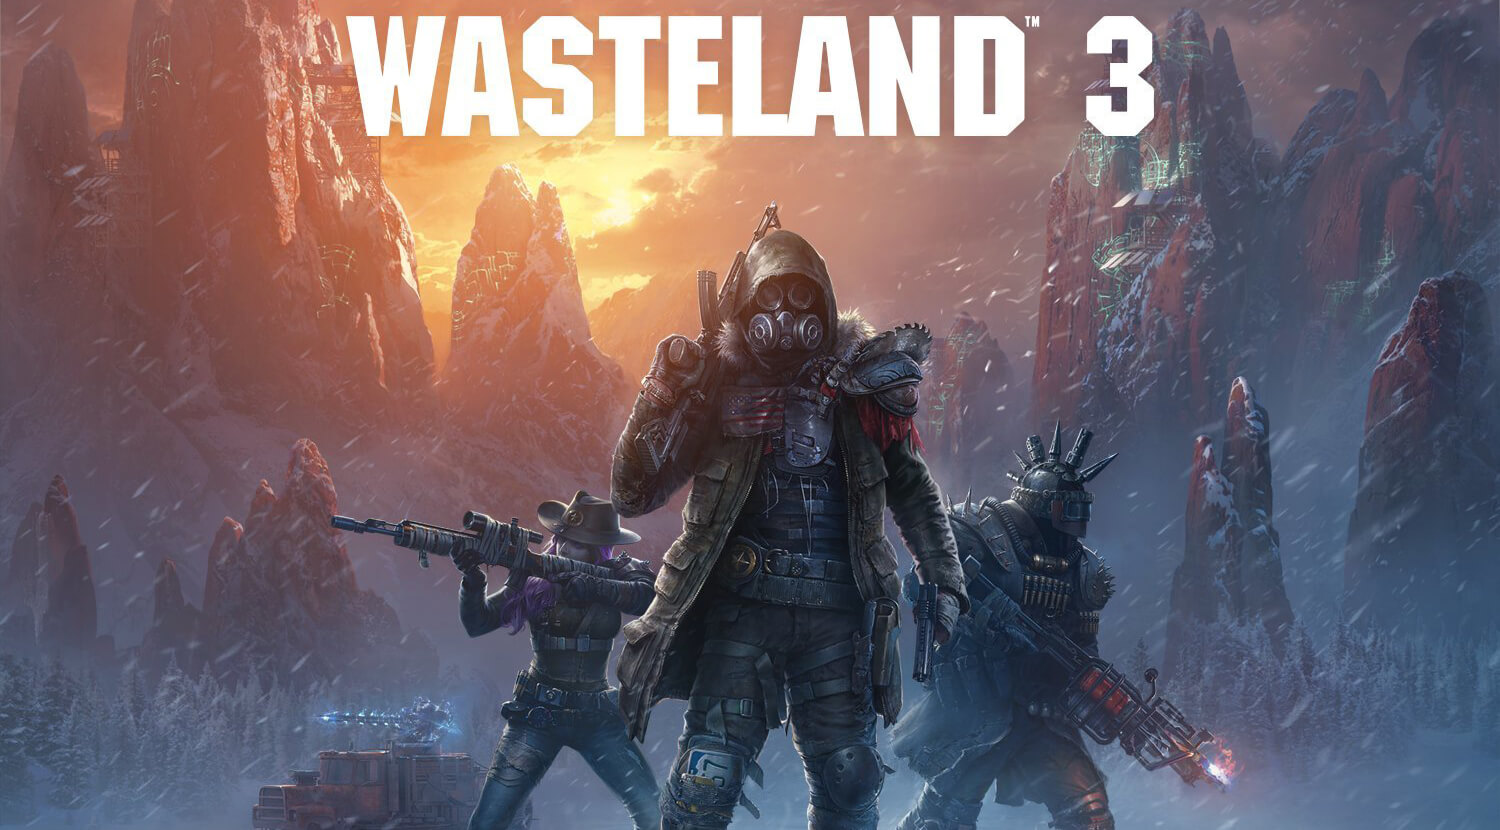 Wasteland 3 major patch 1.2.0 released